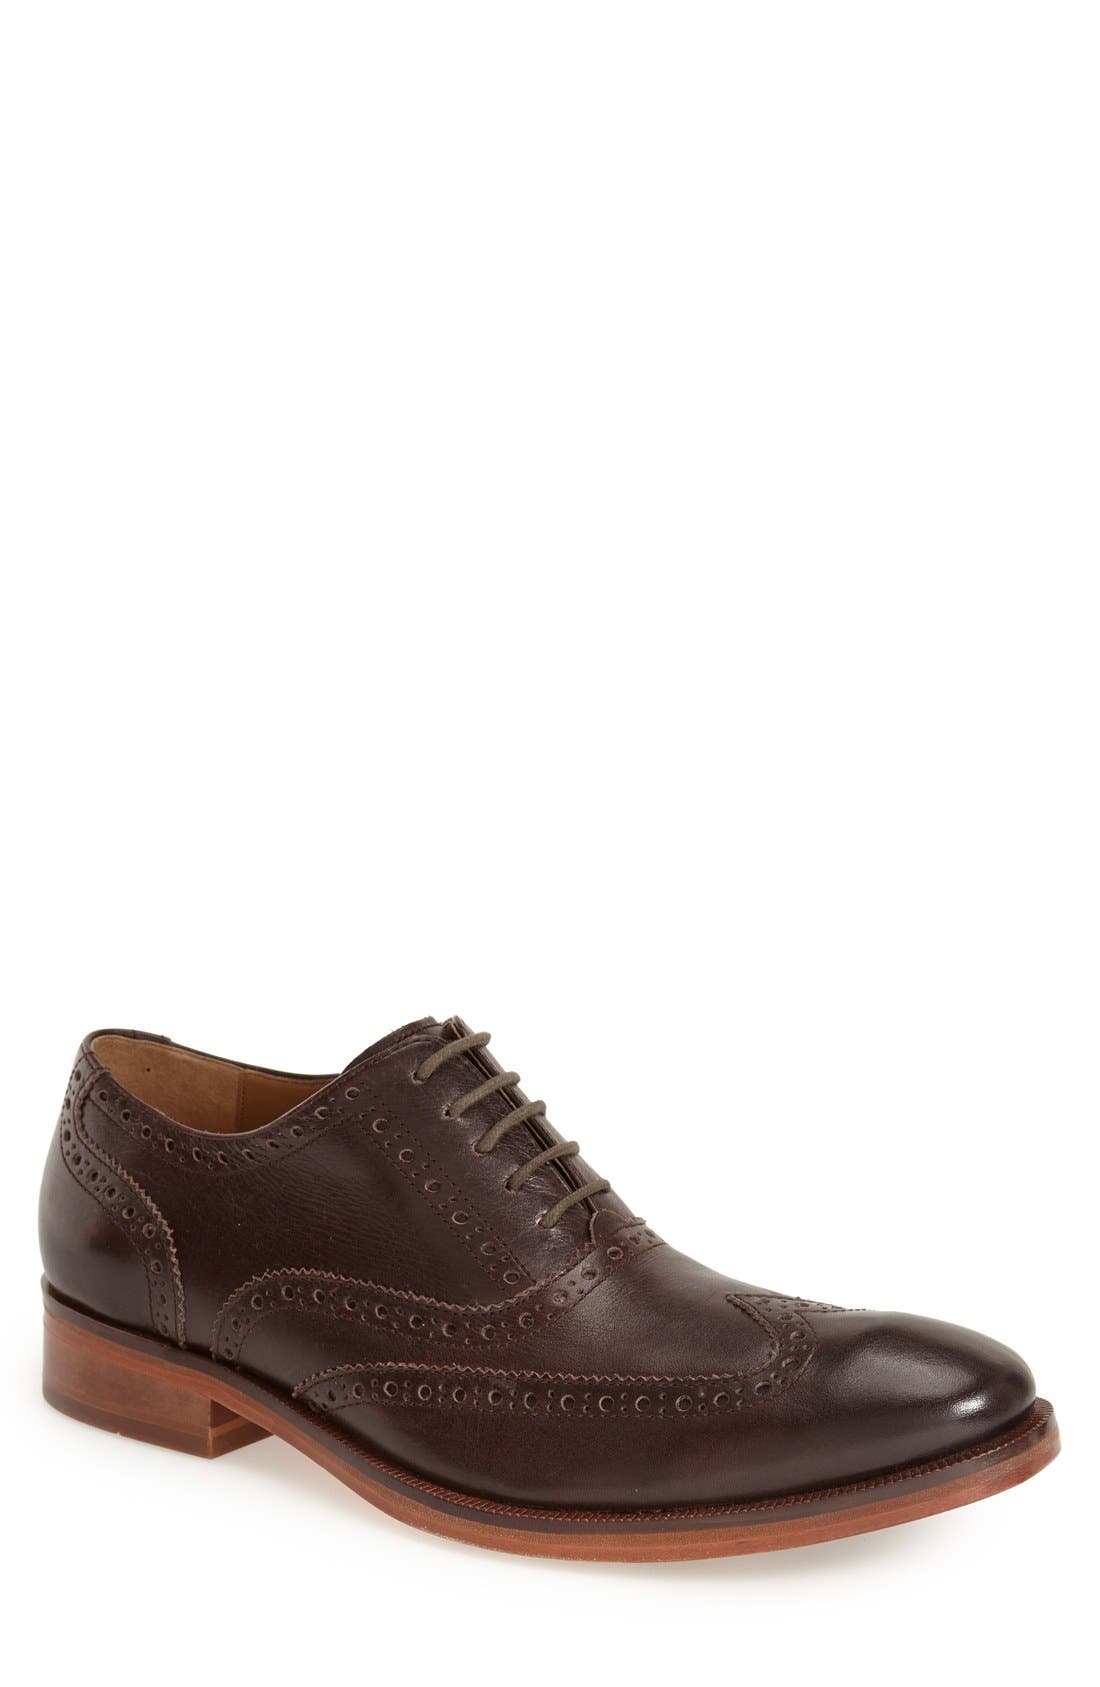 'Colton' Wingtip Oxford,                         Main,                         color, Chestnut